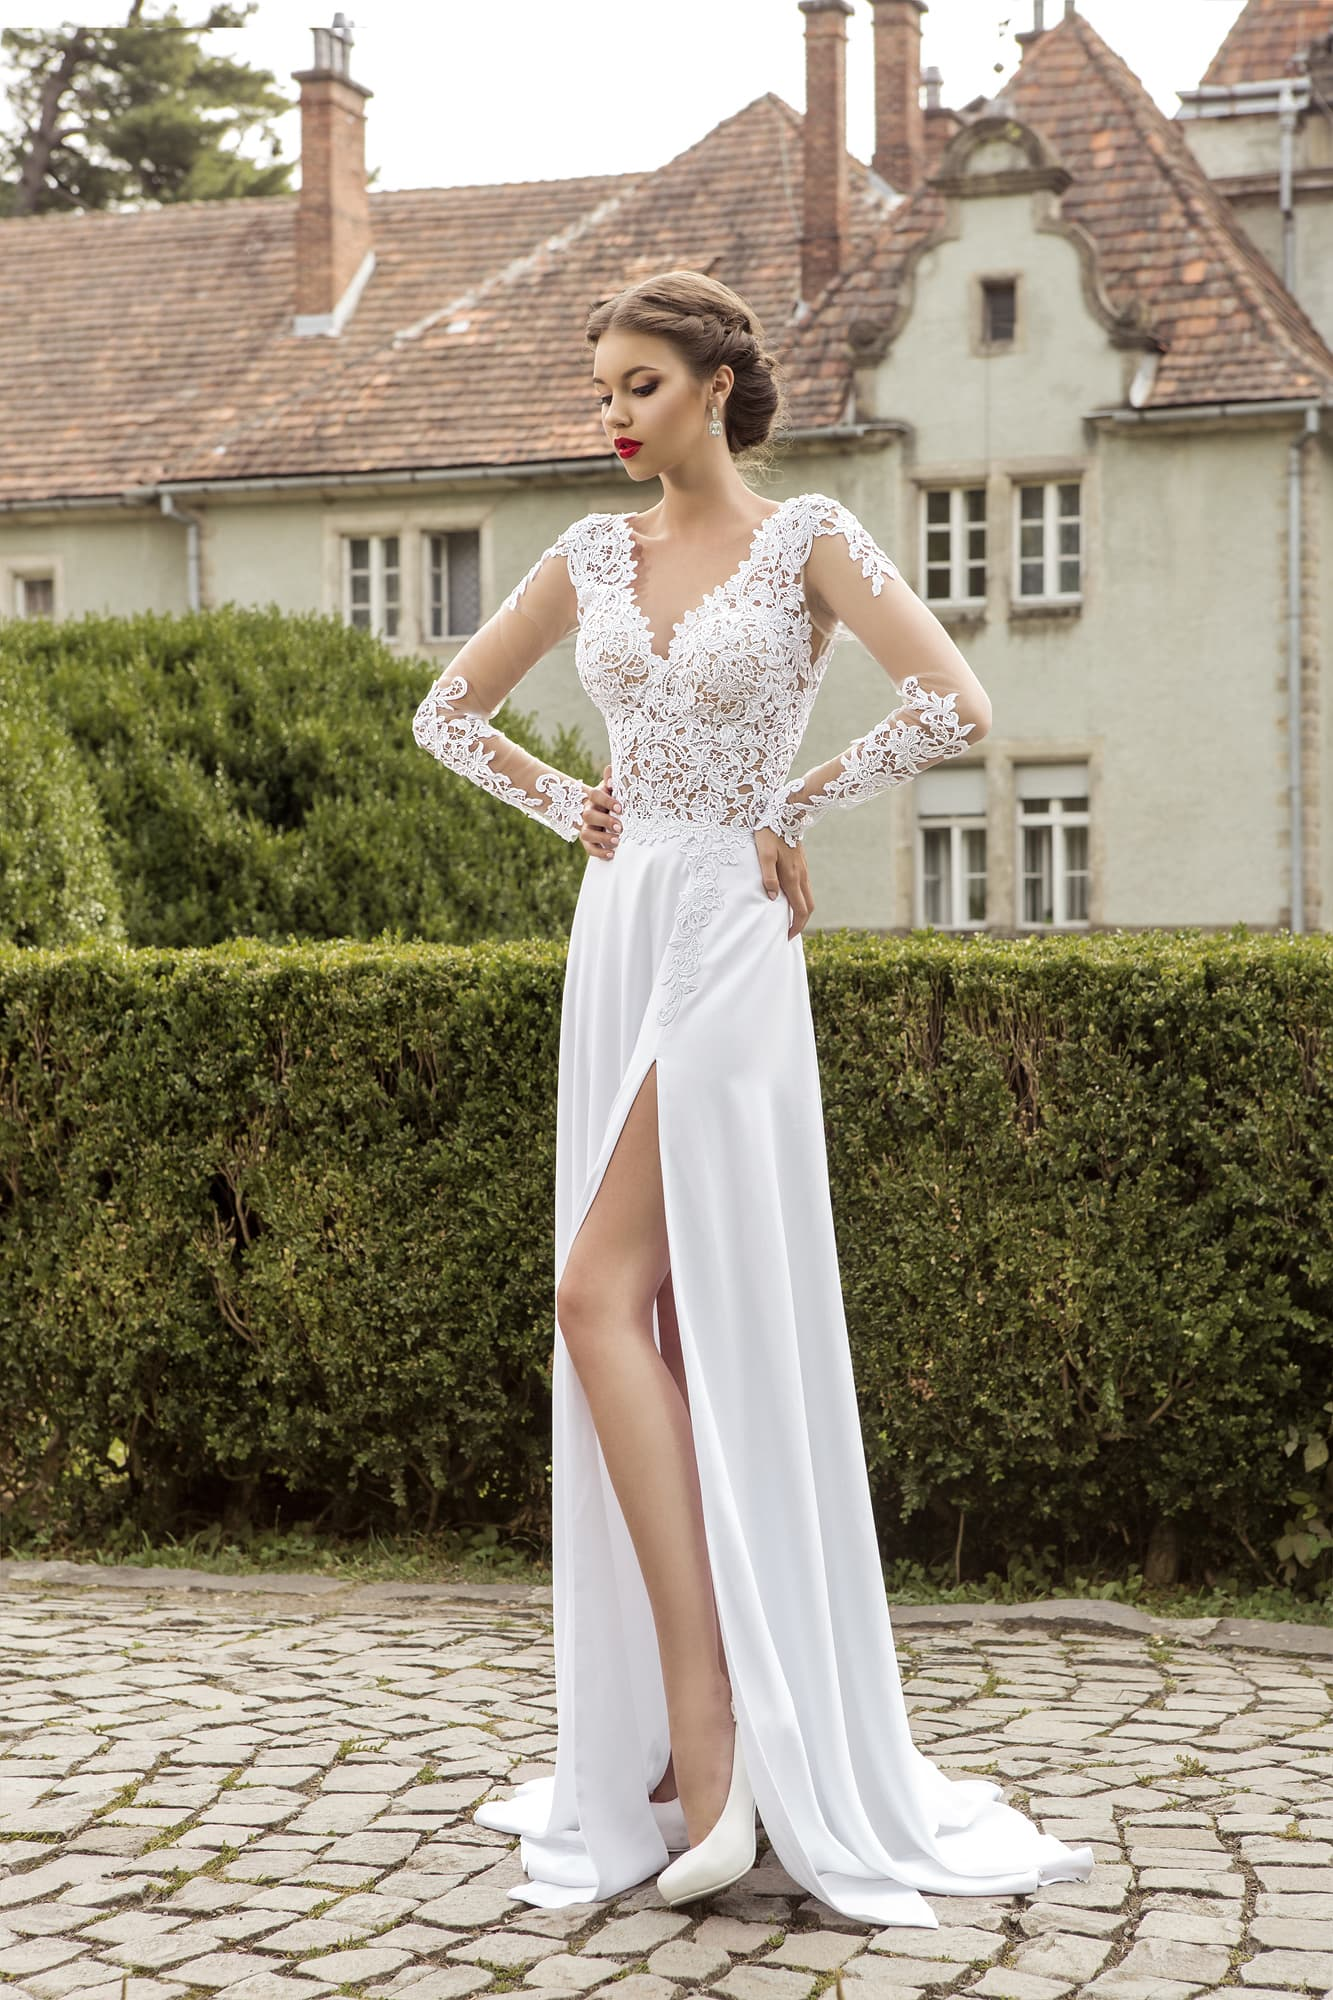 A wedding dress with open leg